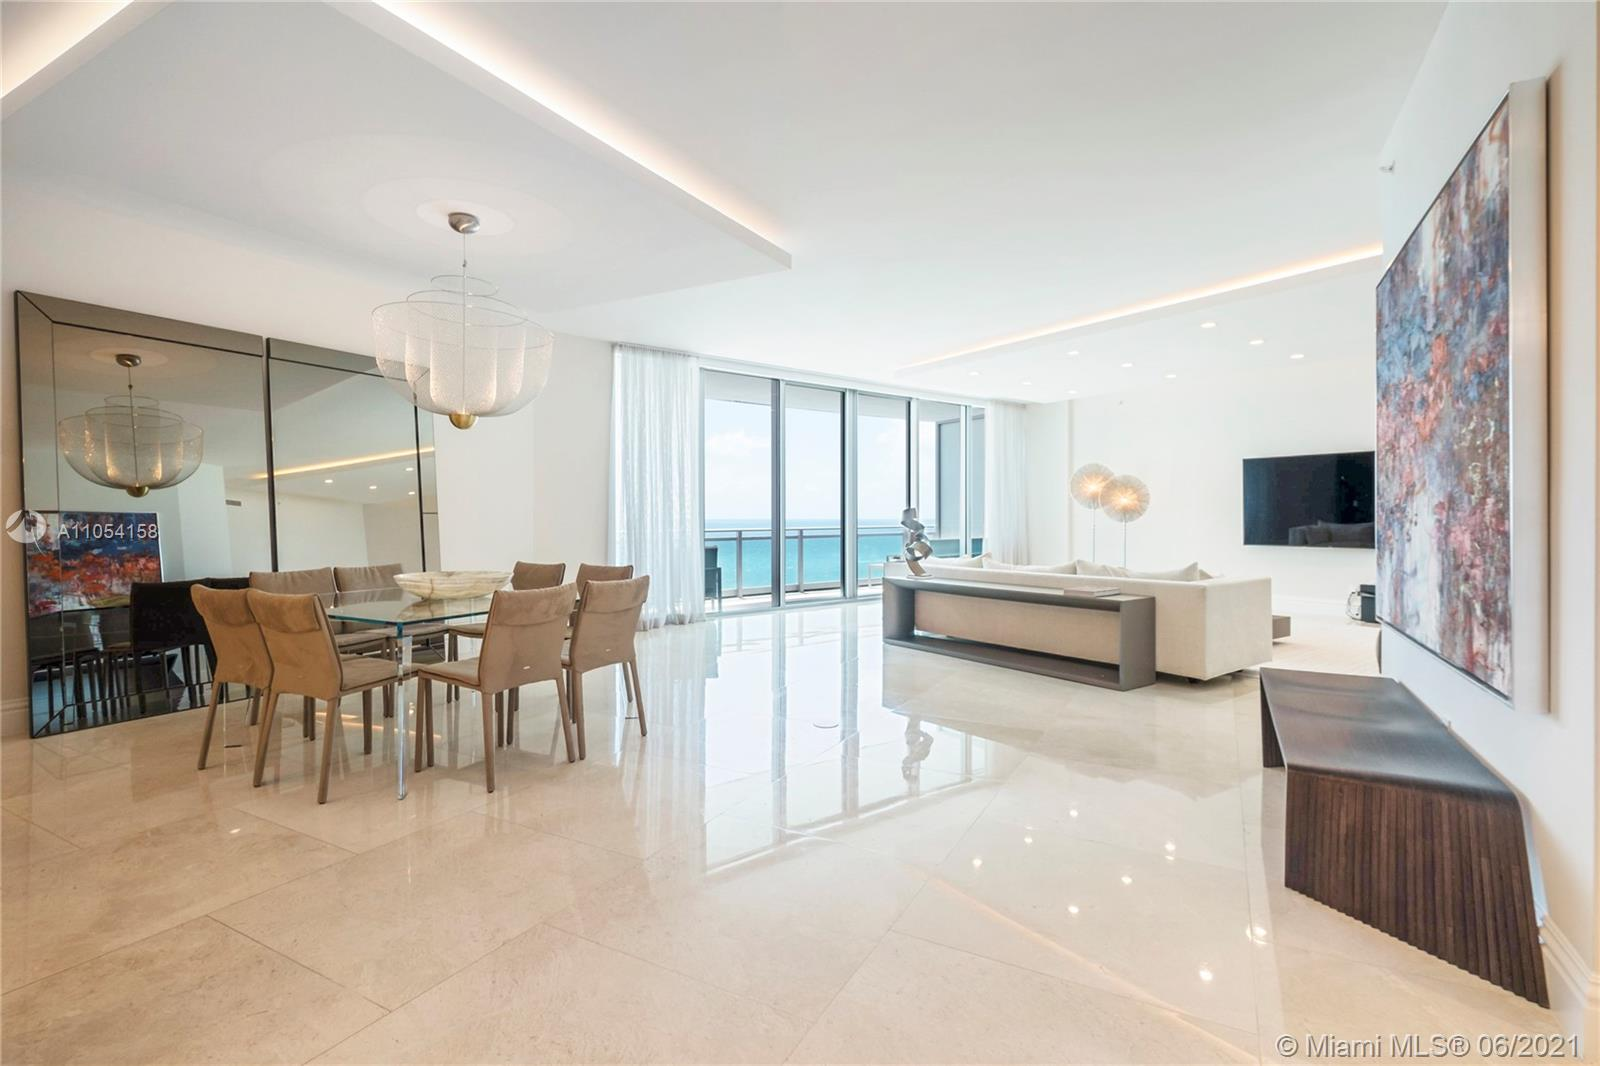 SPECTACULAR HIGH FLOOR DIRECT OCEAN RESIDENCE WITH SWEEPING INFINITY VIEW OF THE OCEAN AND INTRACOASTAL. FINISHED TO PERFECTION, IDEAL FOR ENTERTAINING.  ACCESS TO WORLD-CLASS RITZ CARLTON RESORT AMENITIES.